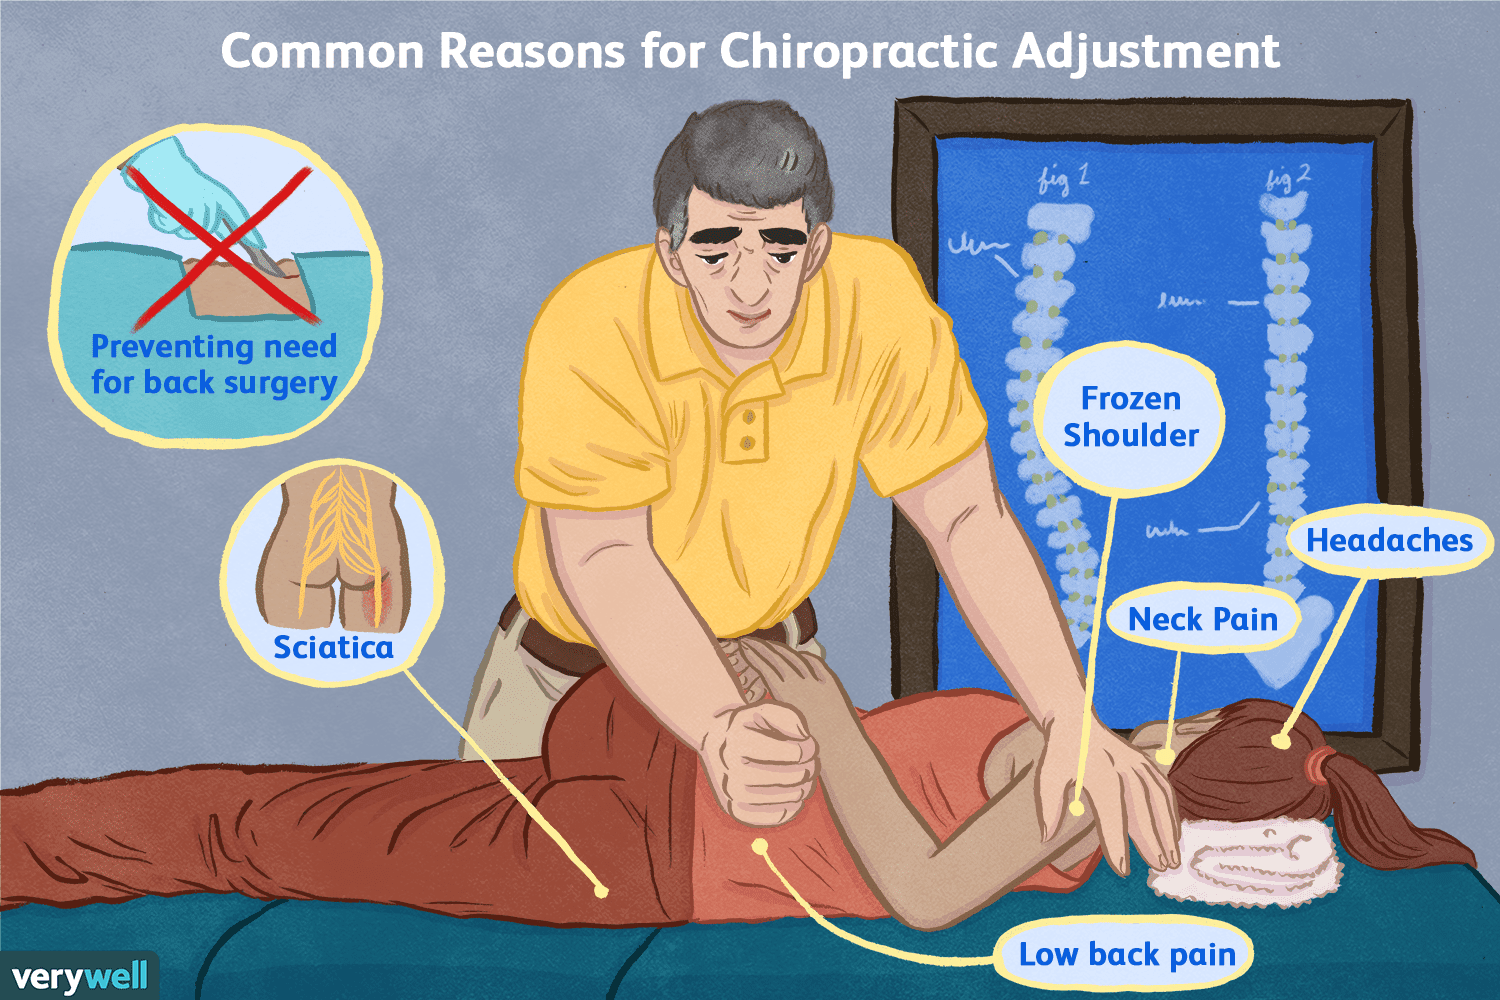 Chiropractic Adjustment: Benefits ...